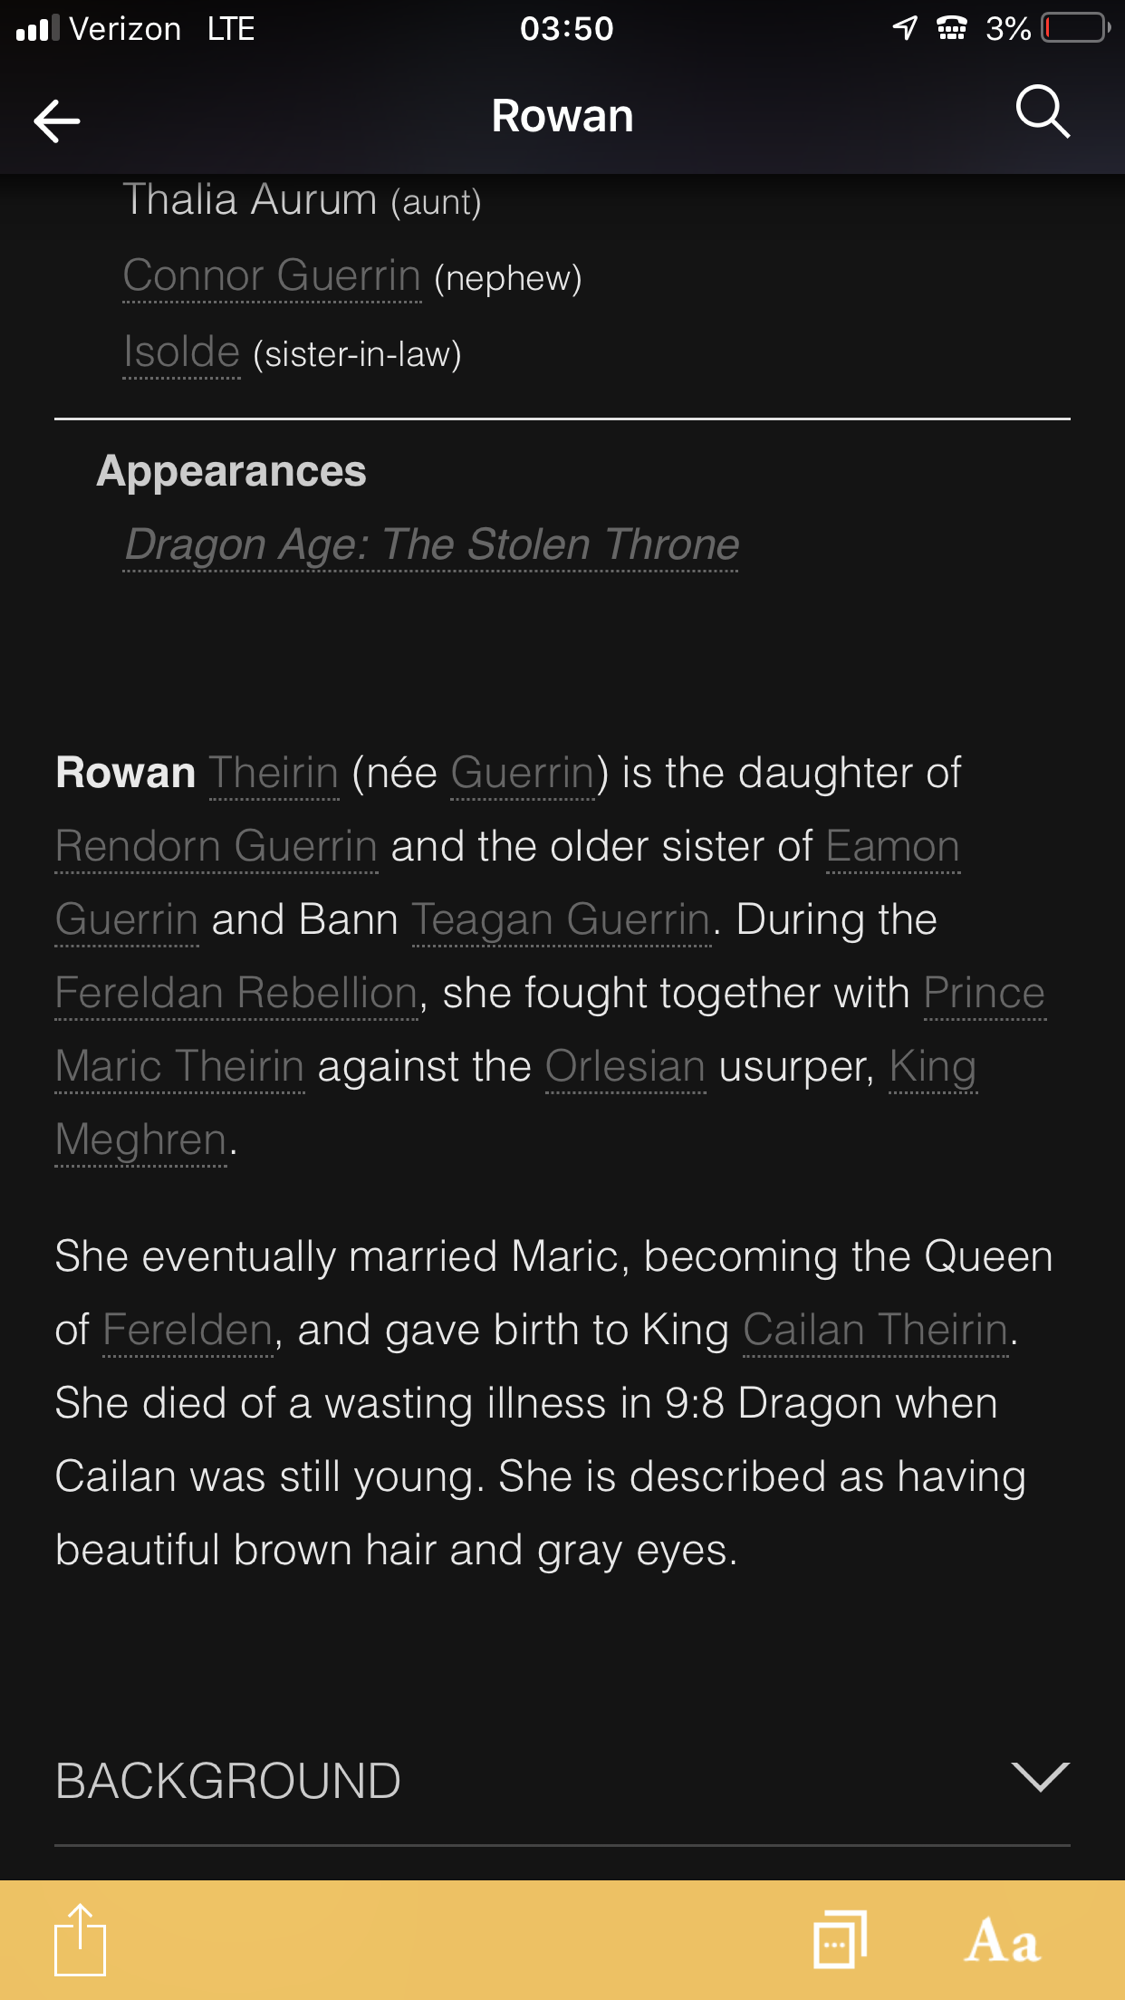 Why did they need to hide Alistair from Rowan if she was already dead?